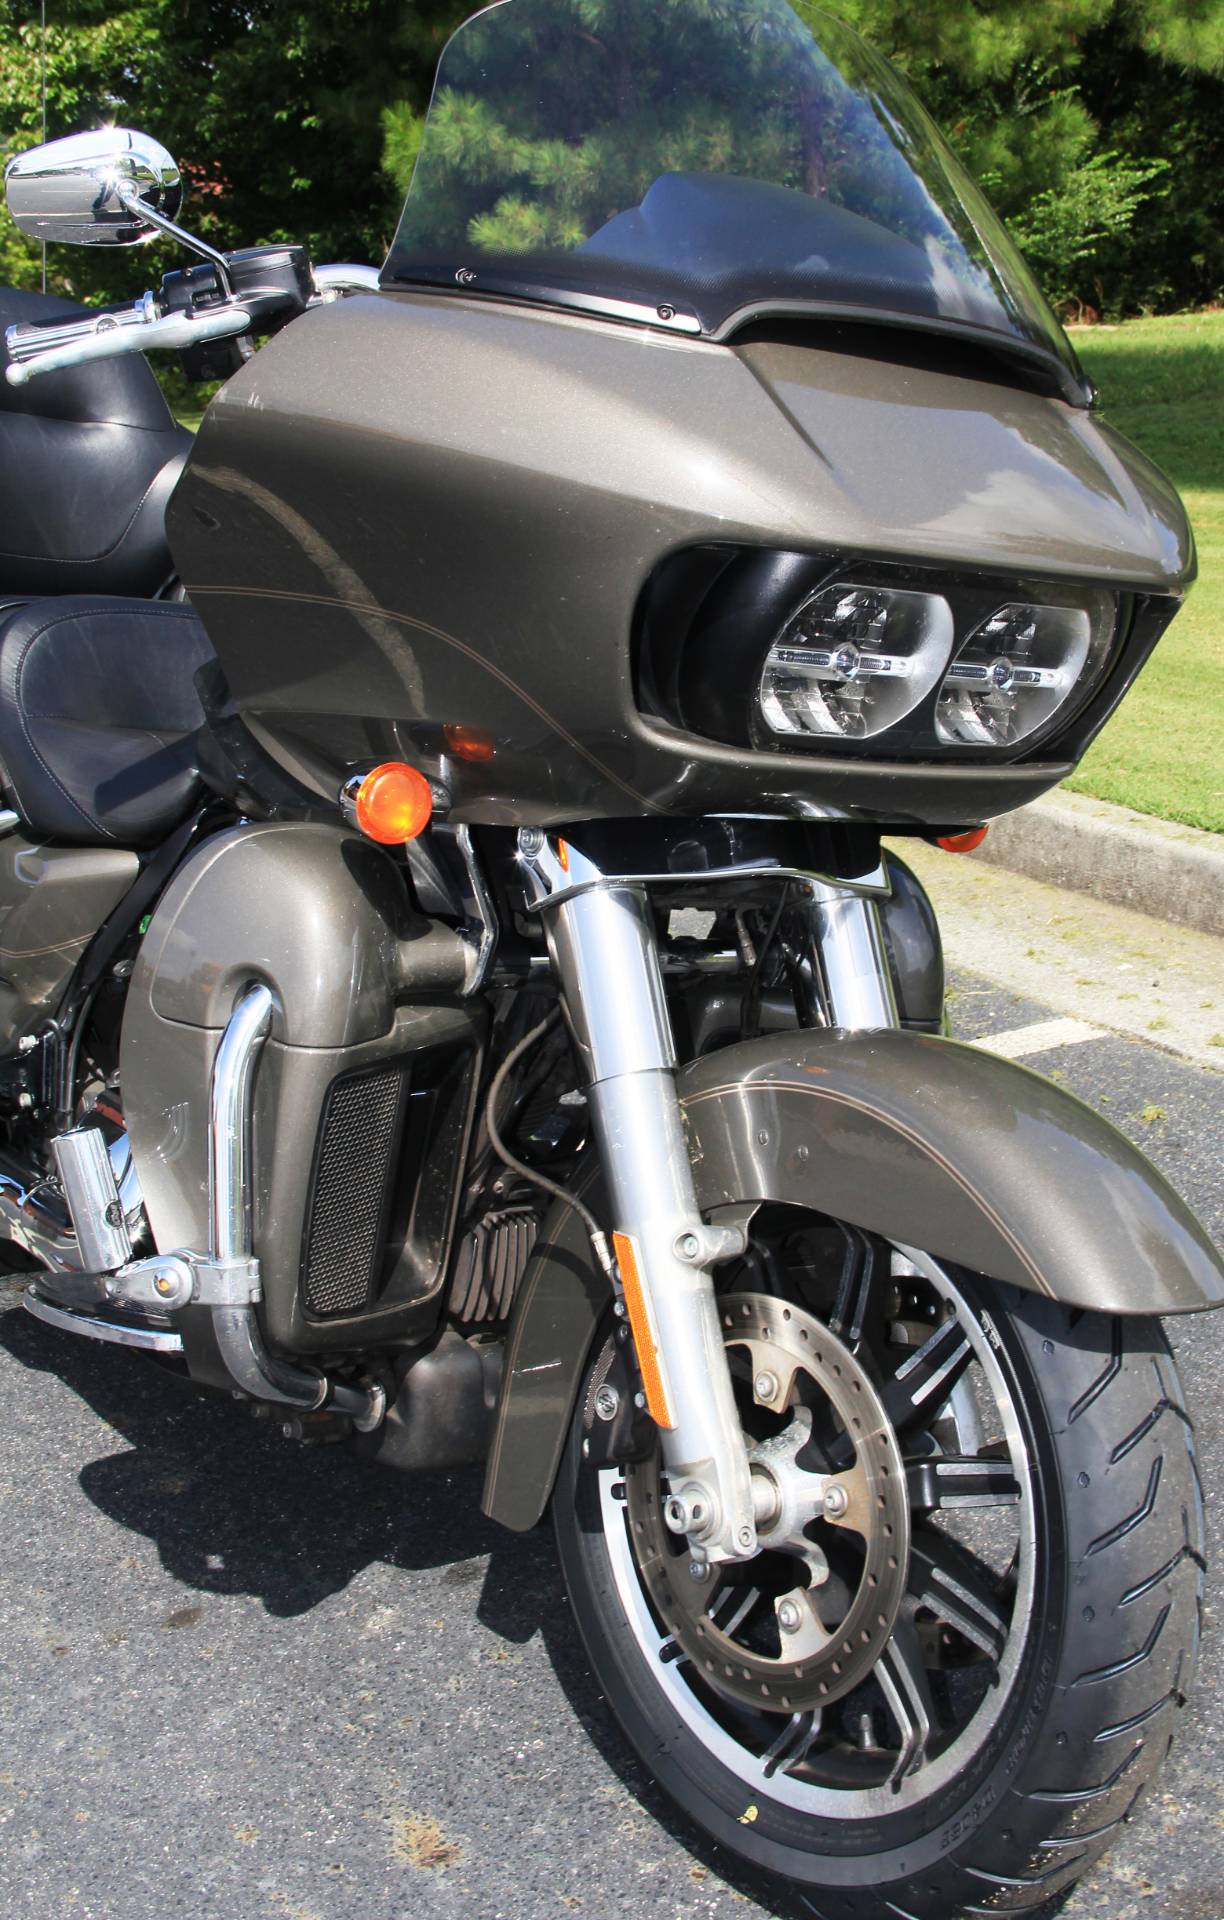 2018 Harley-Davidson Road Glide Ultra in Cartersville, Georgia - Photo 3